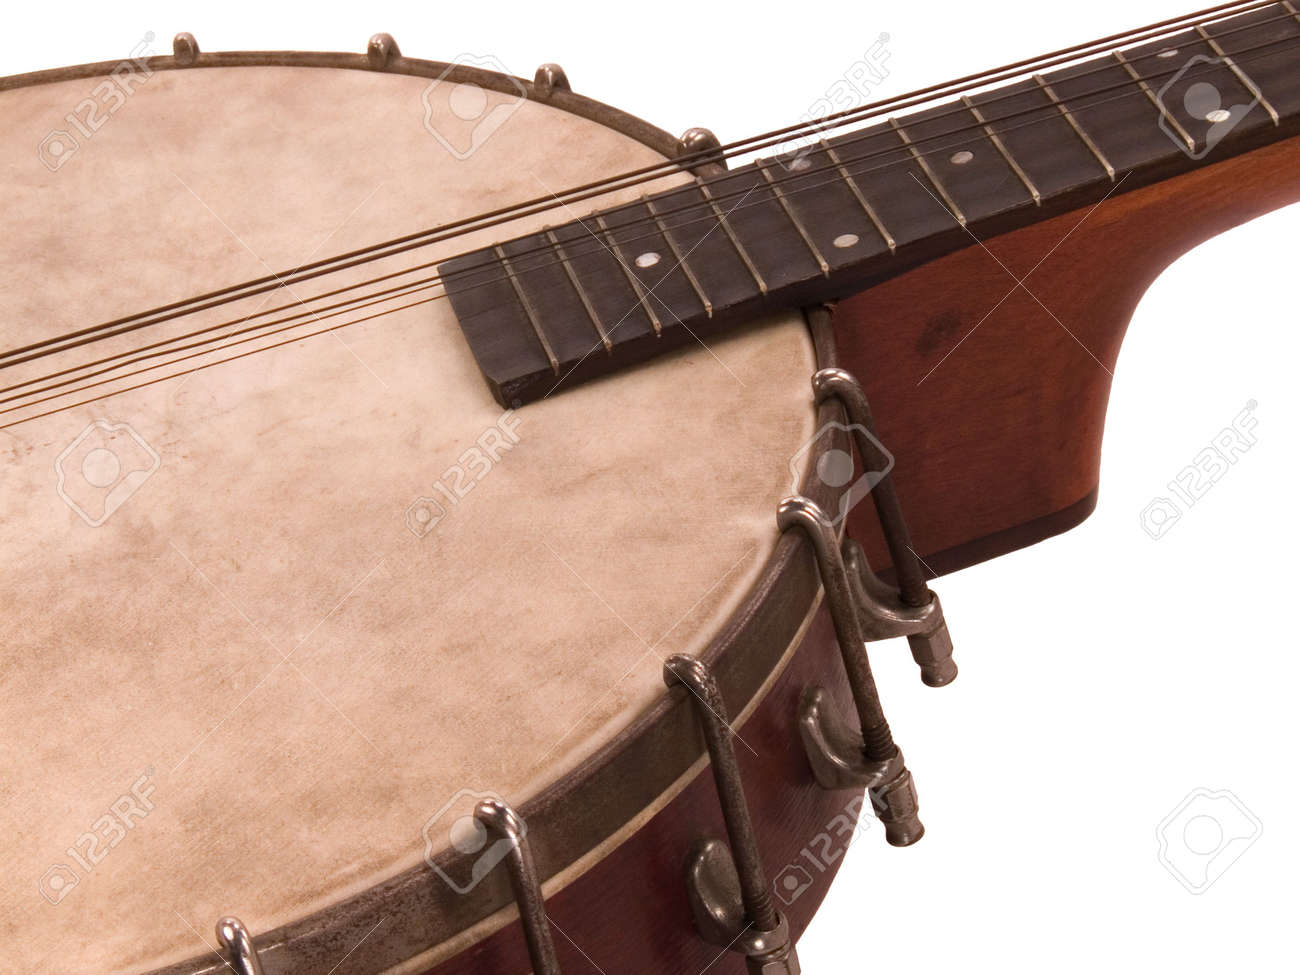 An antique banjolin: Part banjo, part mandolin, partly strung